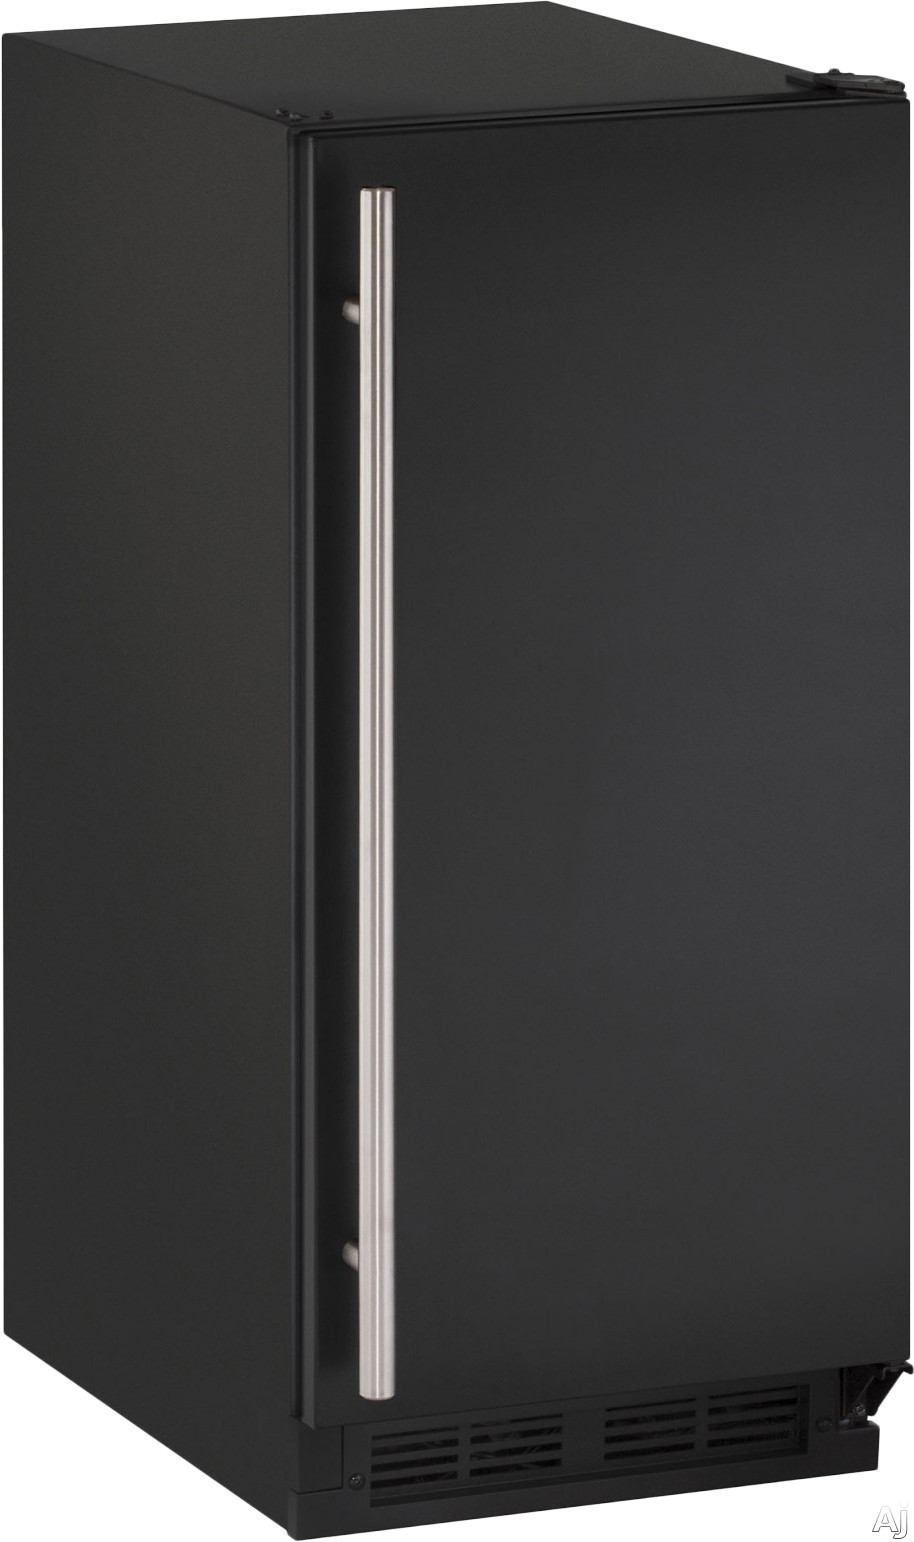 U Line 1000 Series U1215RB00A 29 cu ft Built in Freestanding Compact Refrigerator with 3 Removable Tempered Glass Shelves 57 Bottle or 92 Can Capacity Digital Touch Pad Control and Energy Star Qualified Black